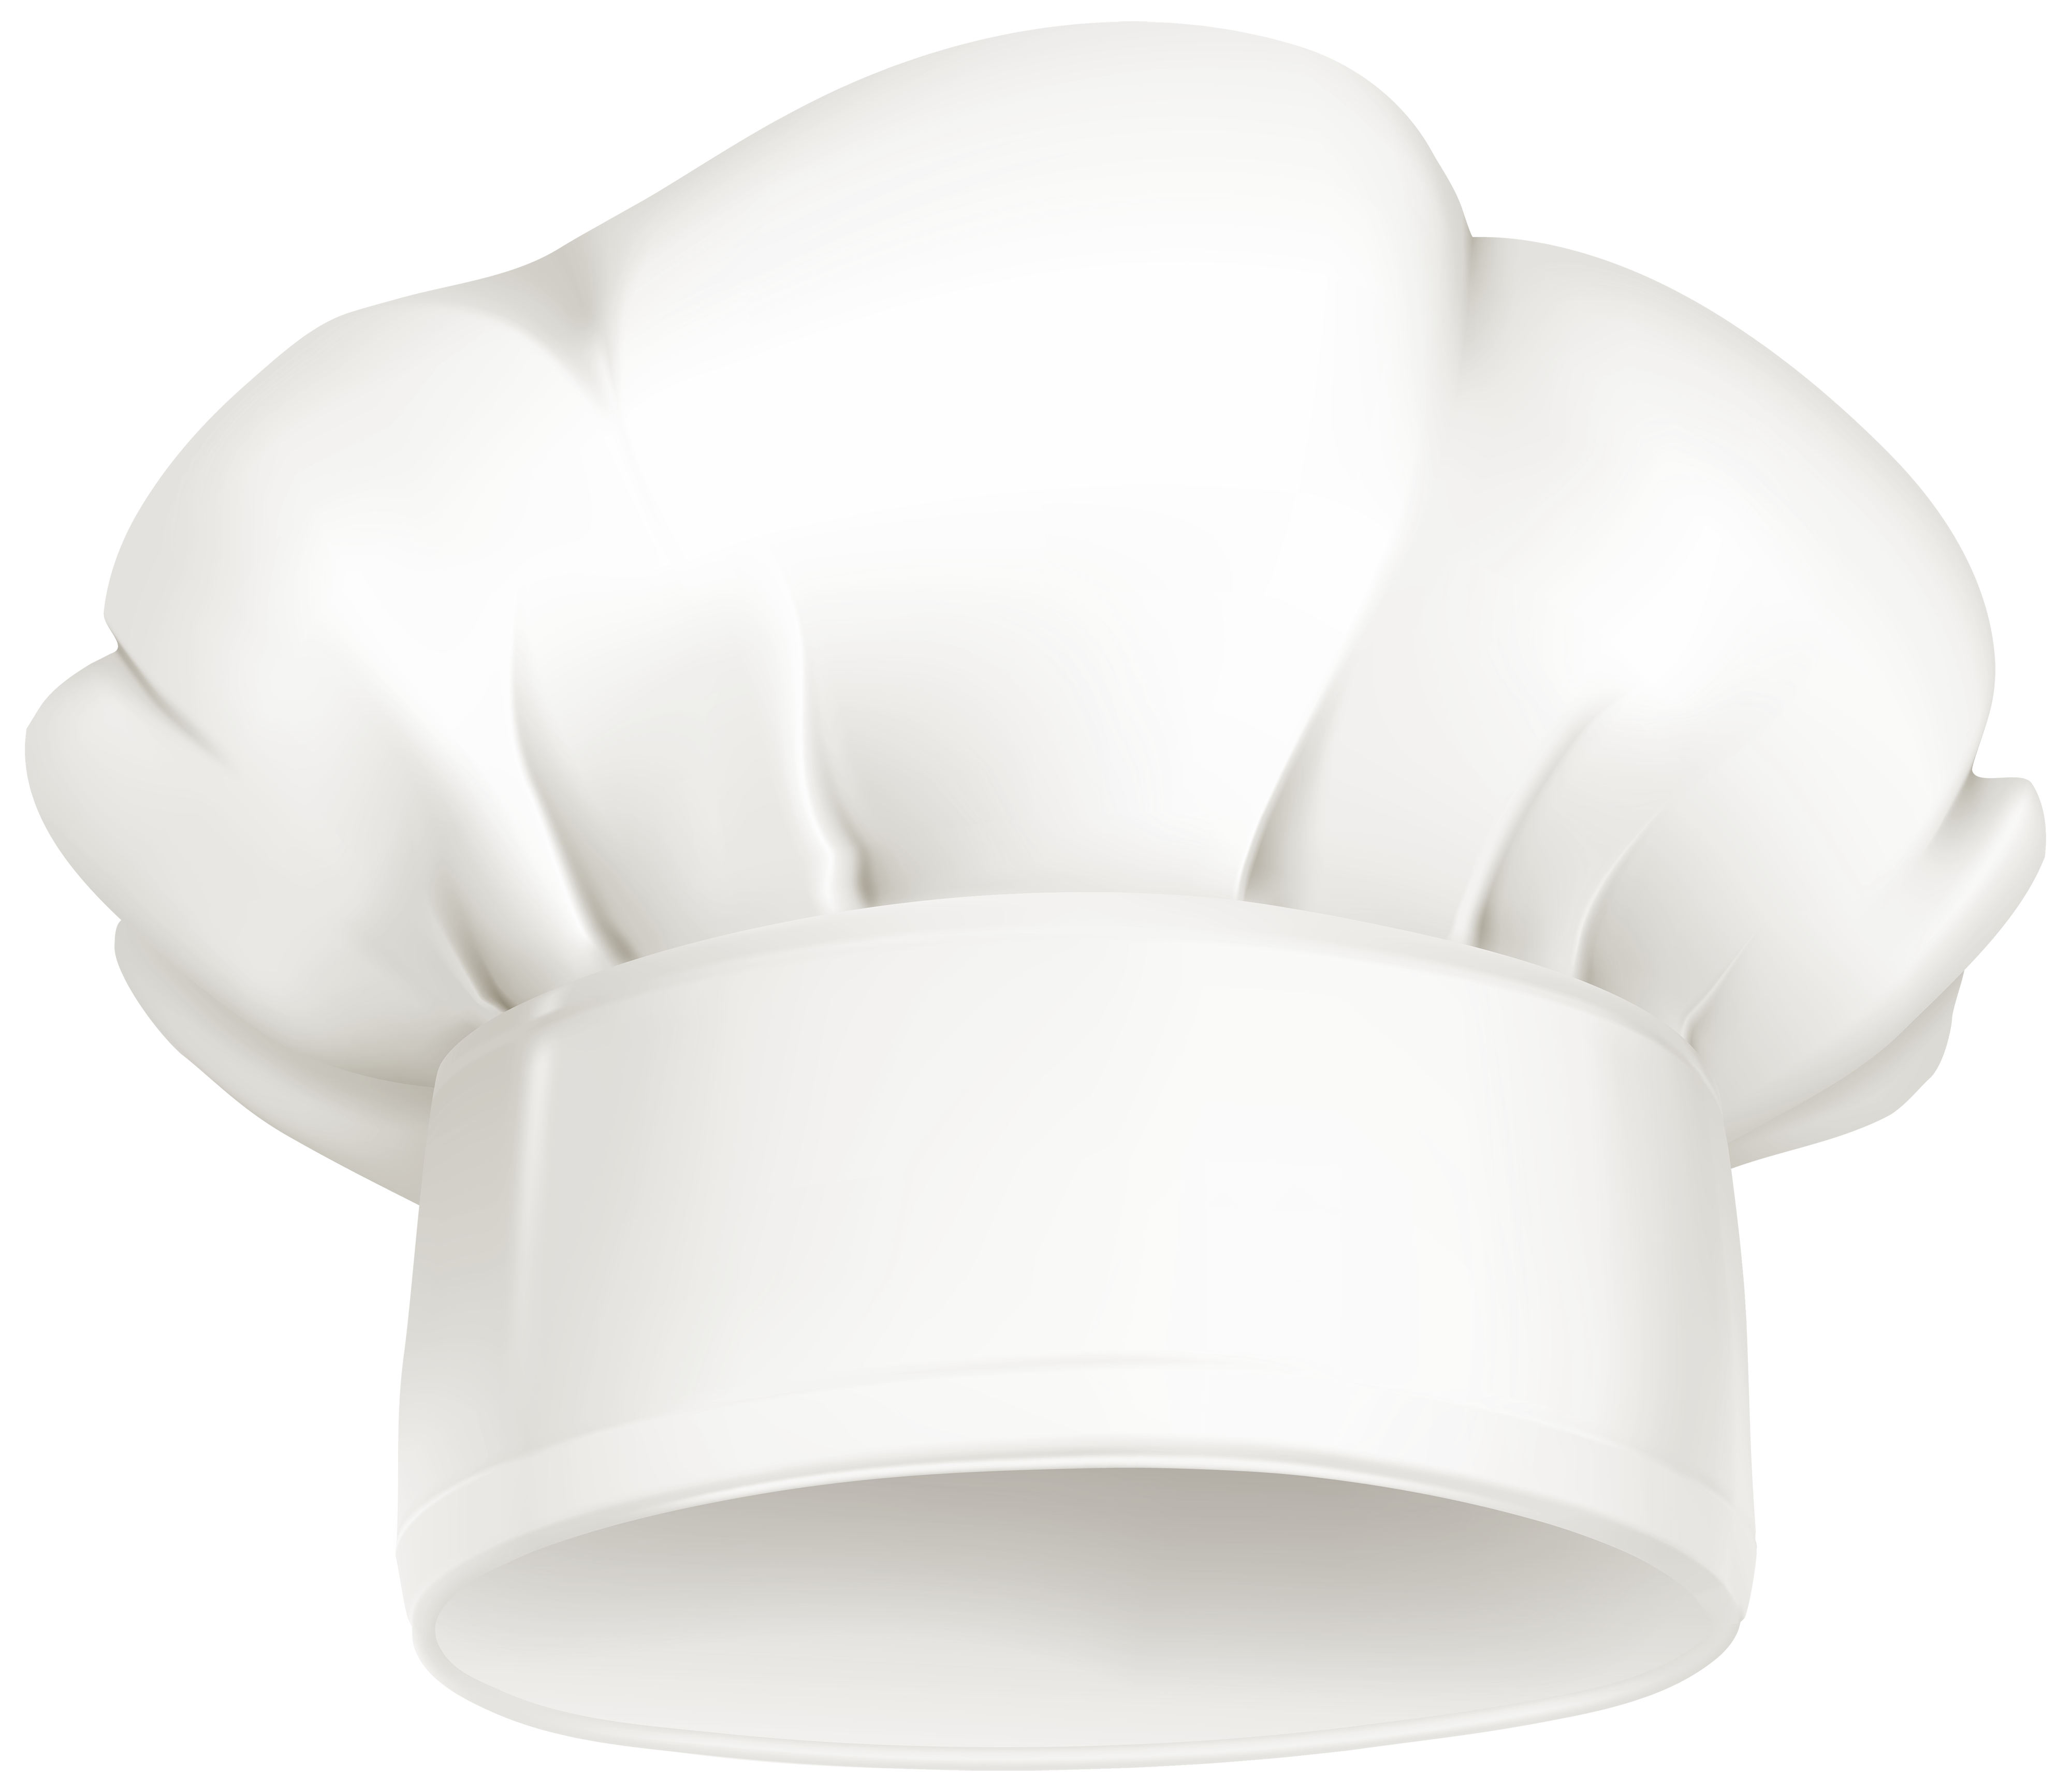 Chef Hat PNG Clipart Image.